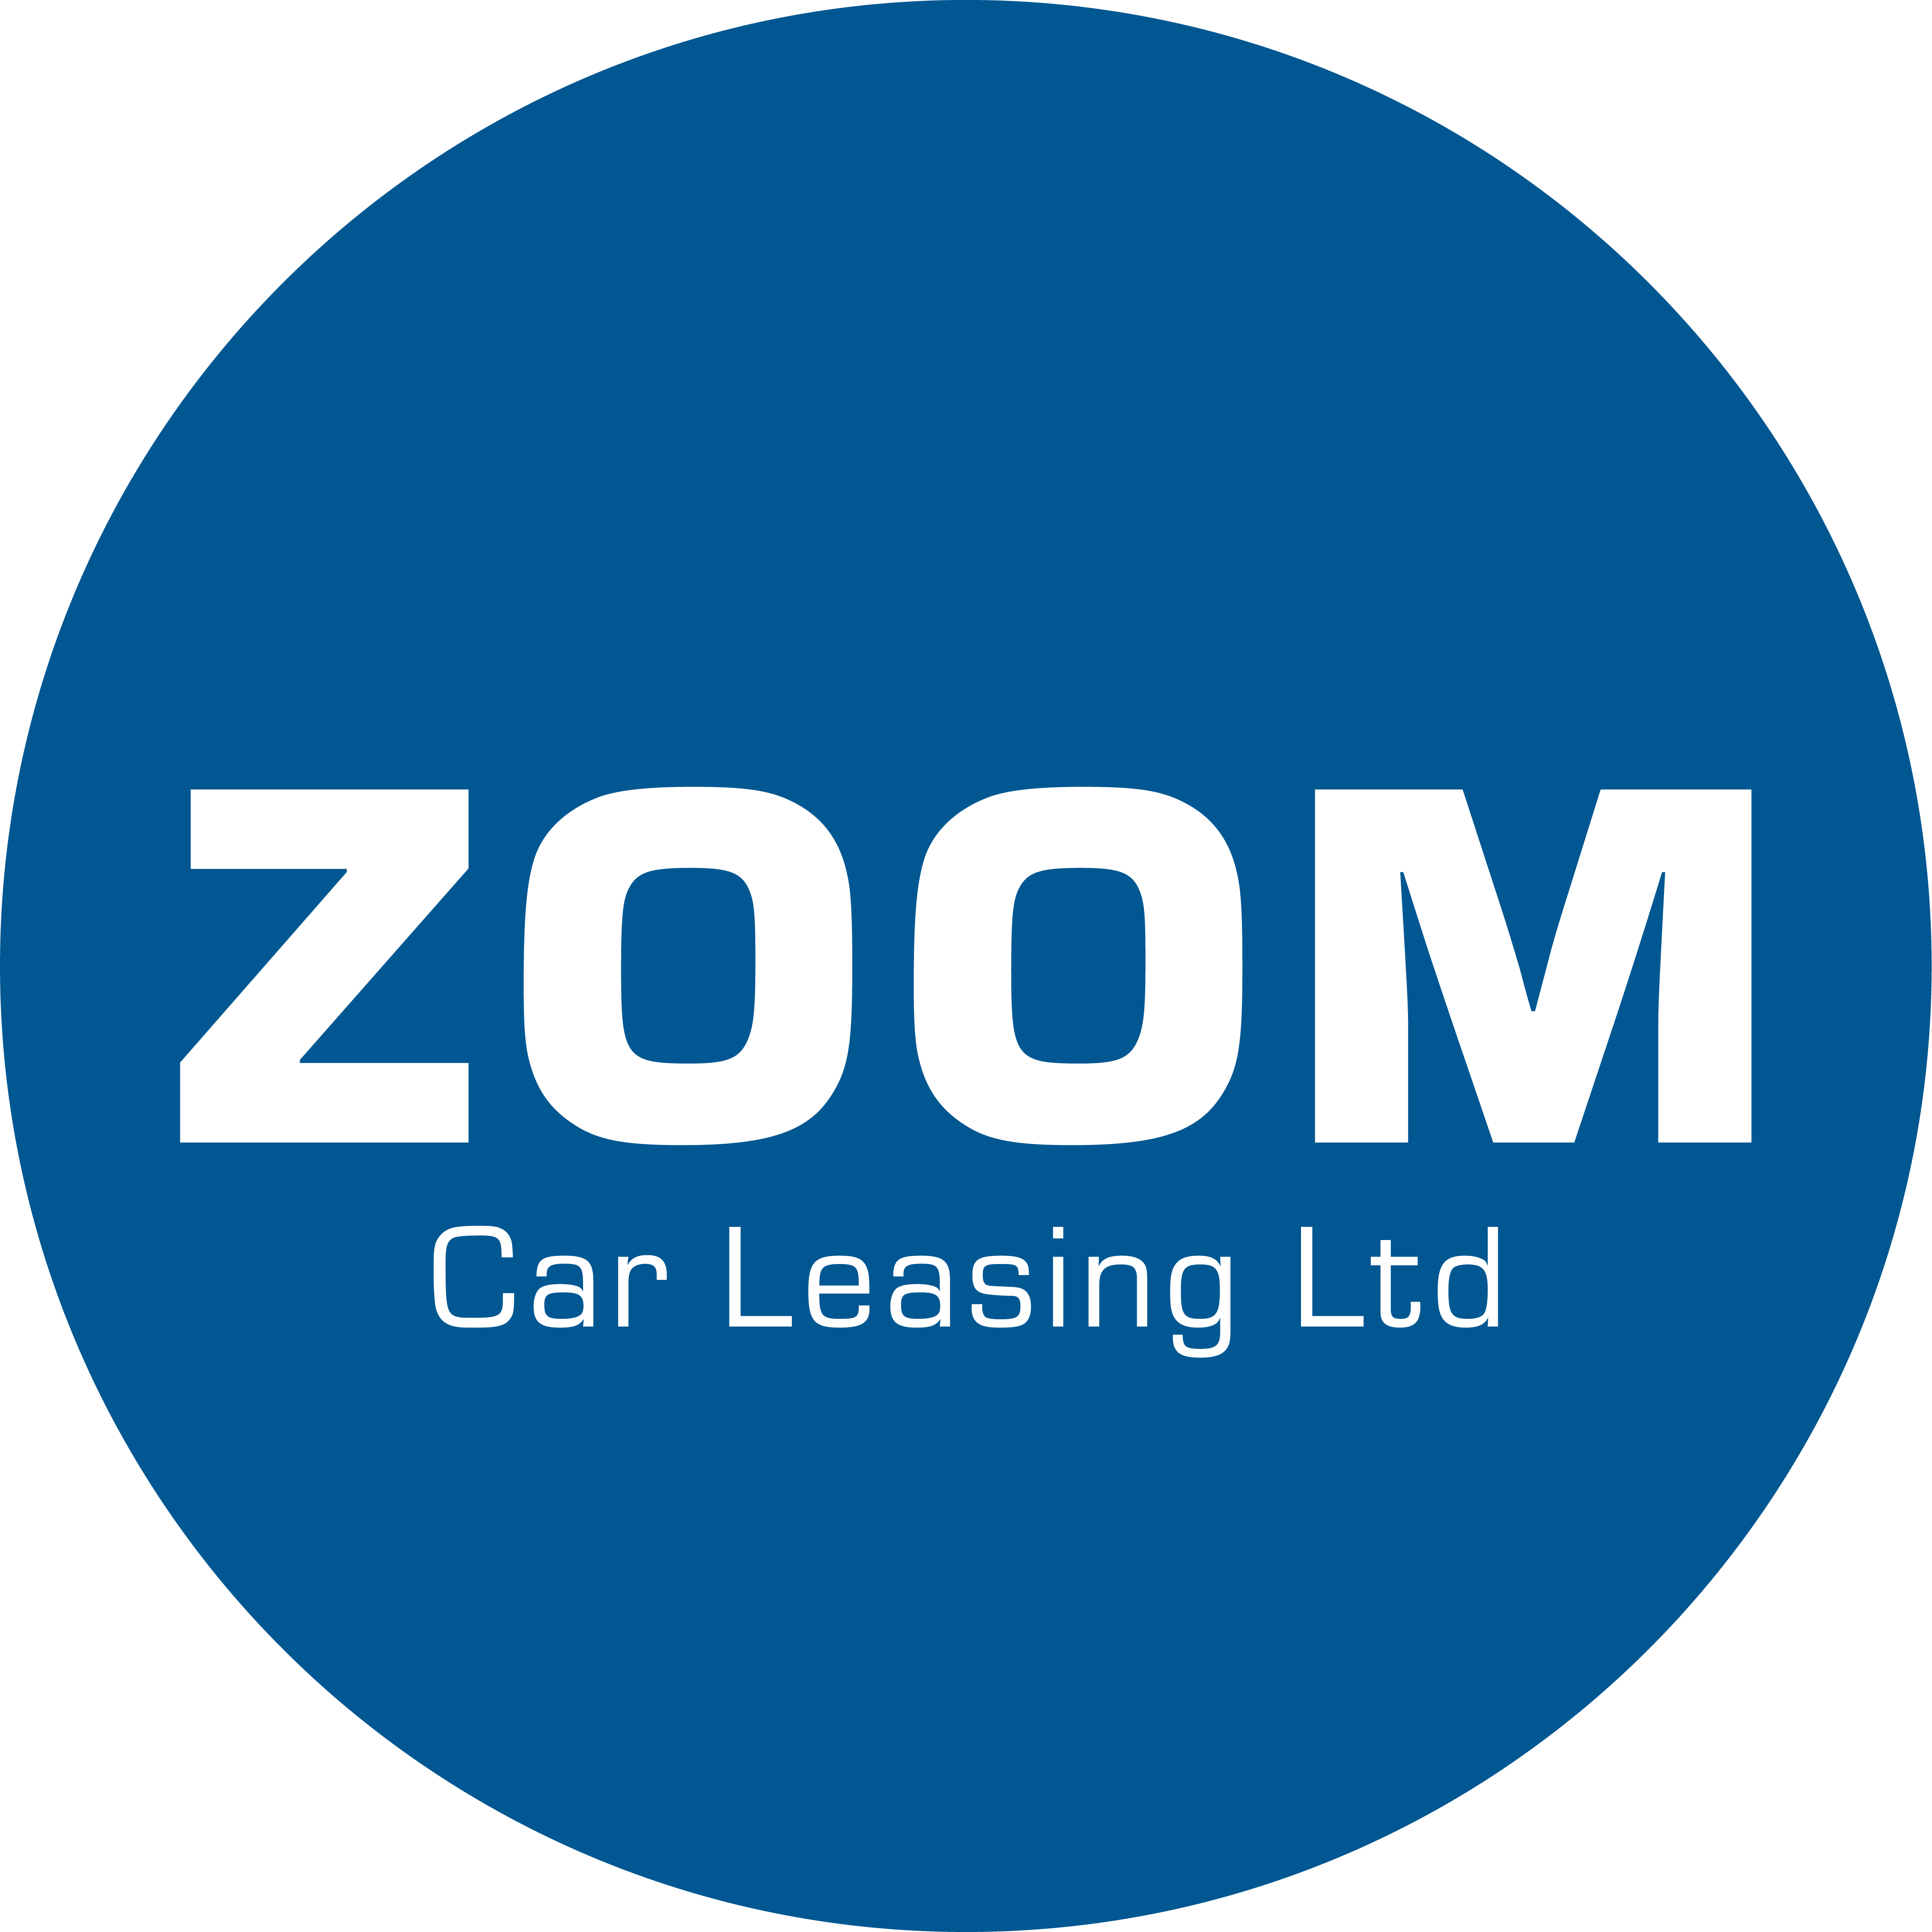 Download Zoom Logo Rgb Blue No Background Watershed Institute Full Size Png Image Pngkit